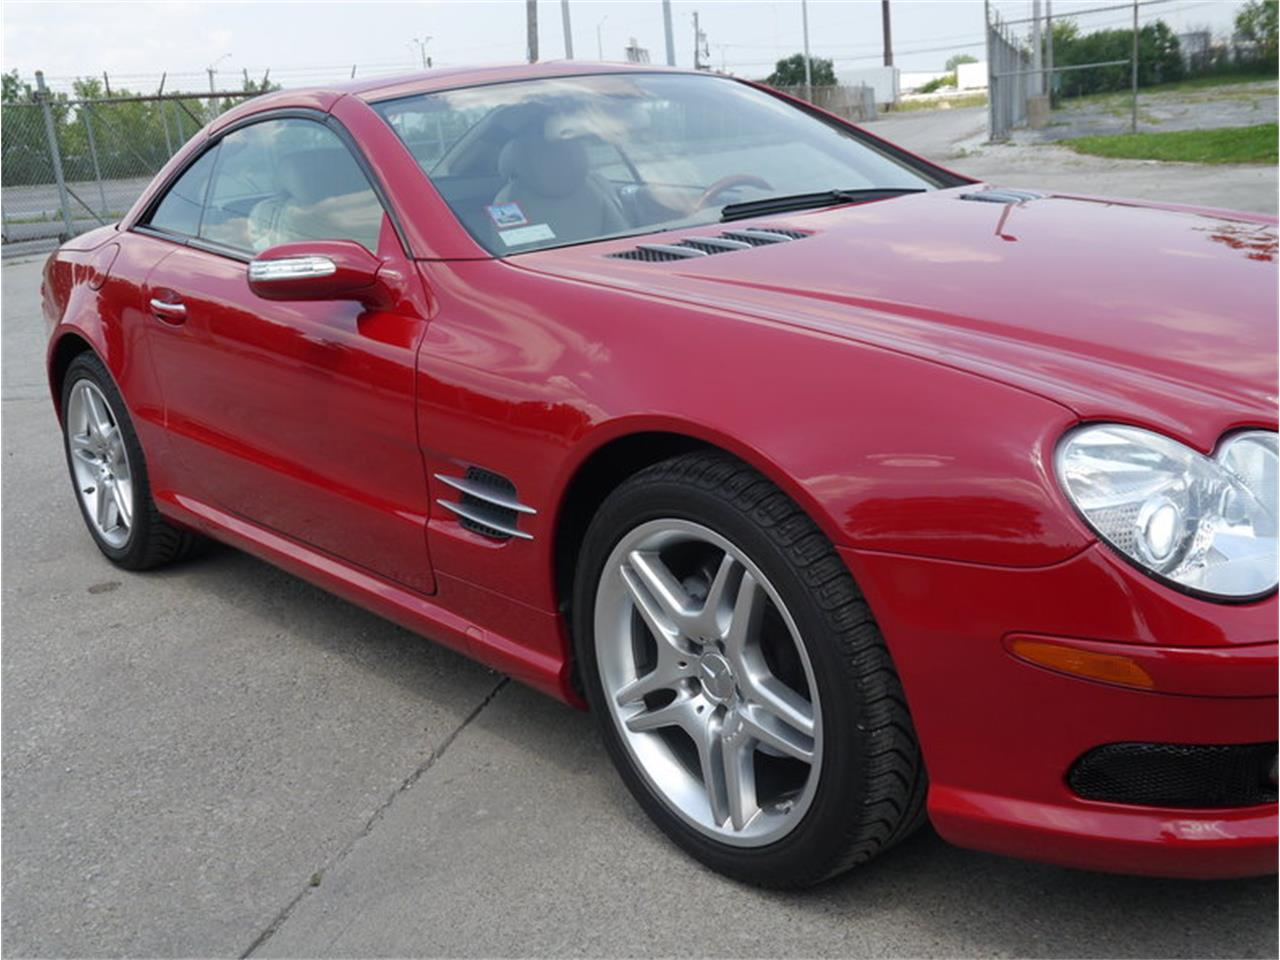 Large Picture of '06 Mercedes-Benz SL500 located in Illinois - $26,900.00 - LEGR